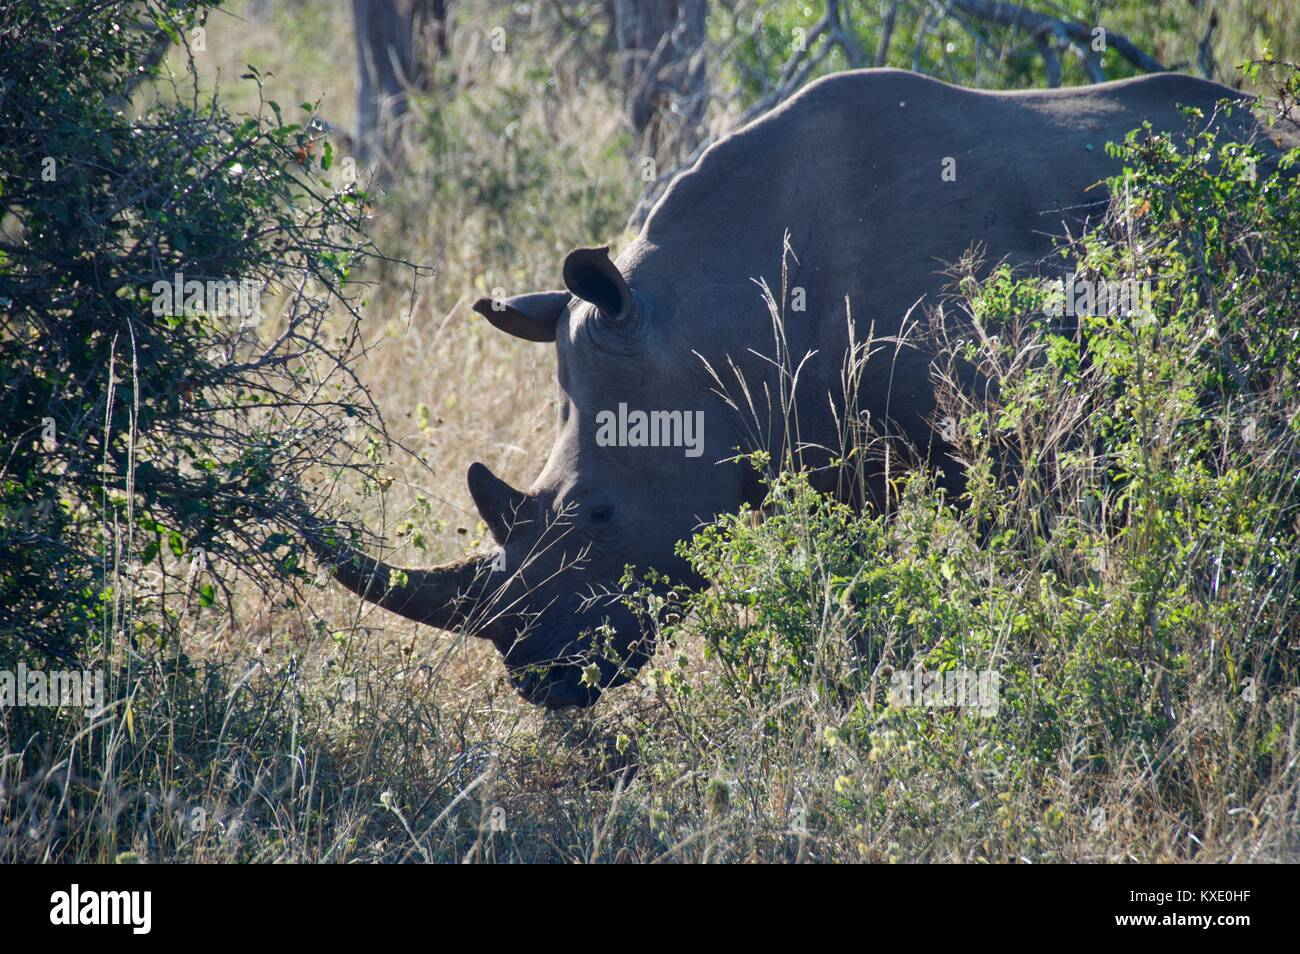 South African Safari and Nature parks - Stock Image